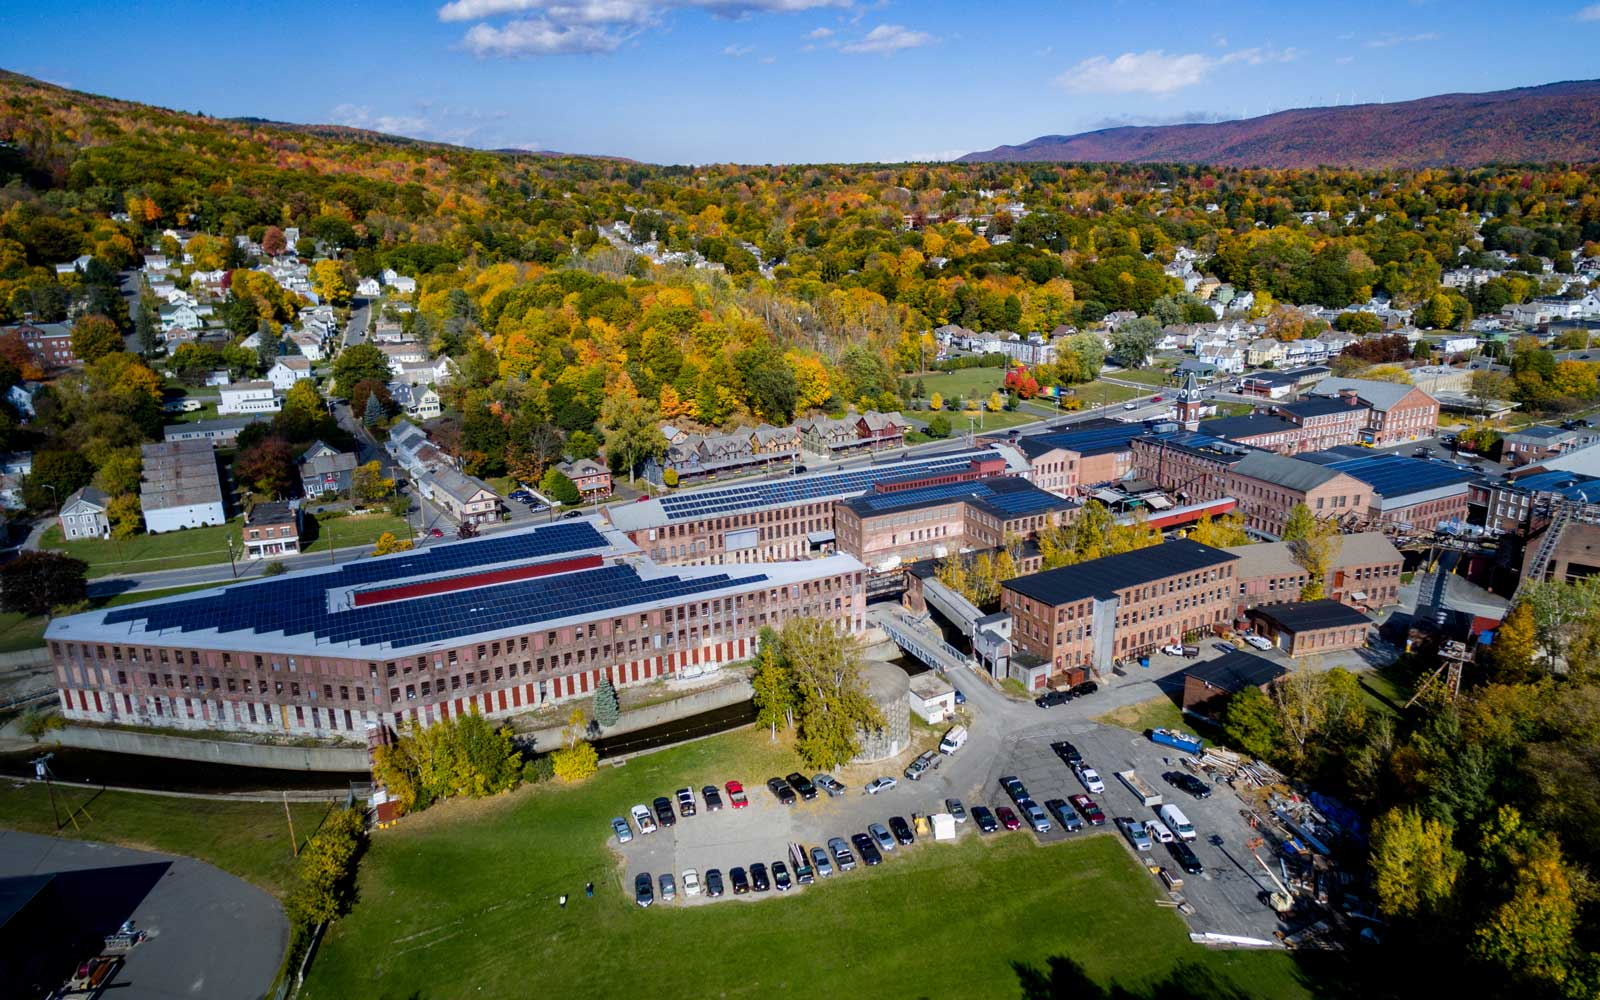 View of Building 6 at MASS MoCA, in the Berkshires area of Massachusetts